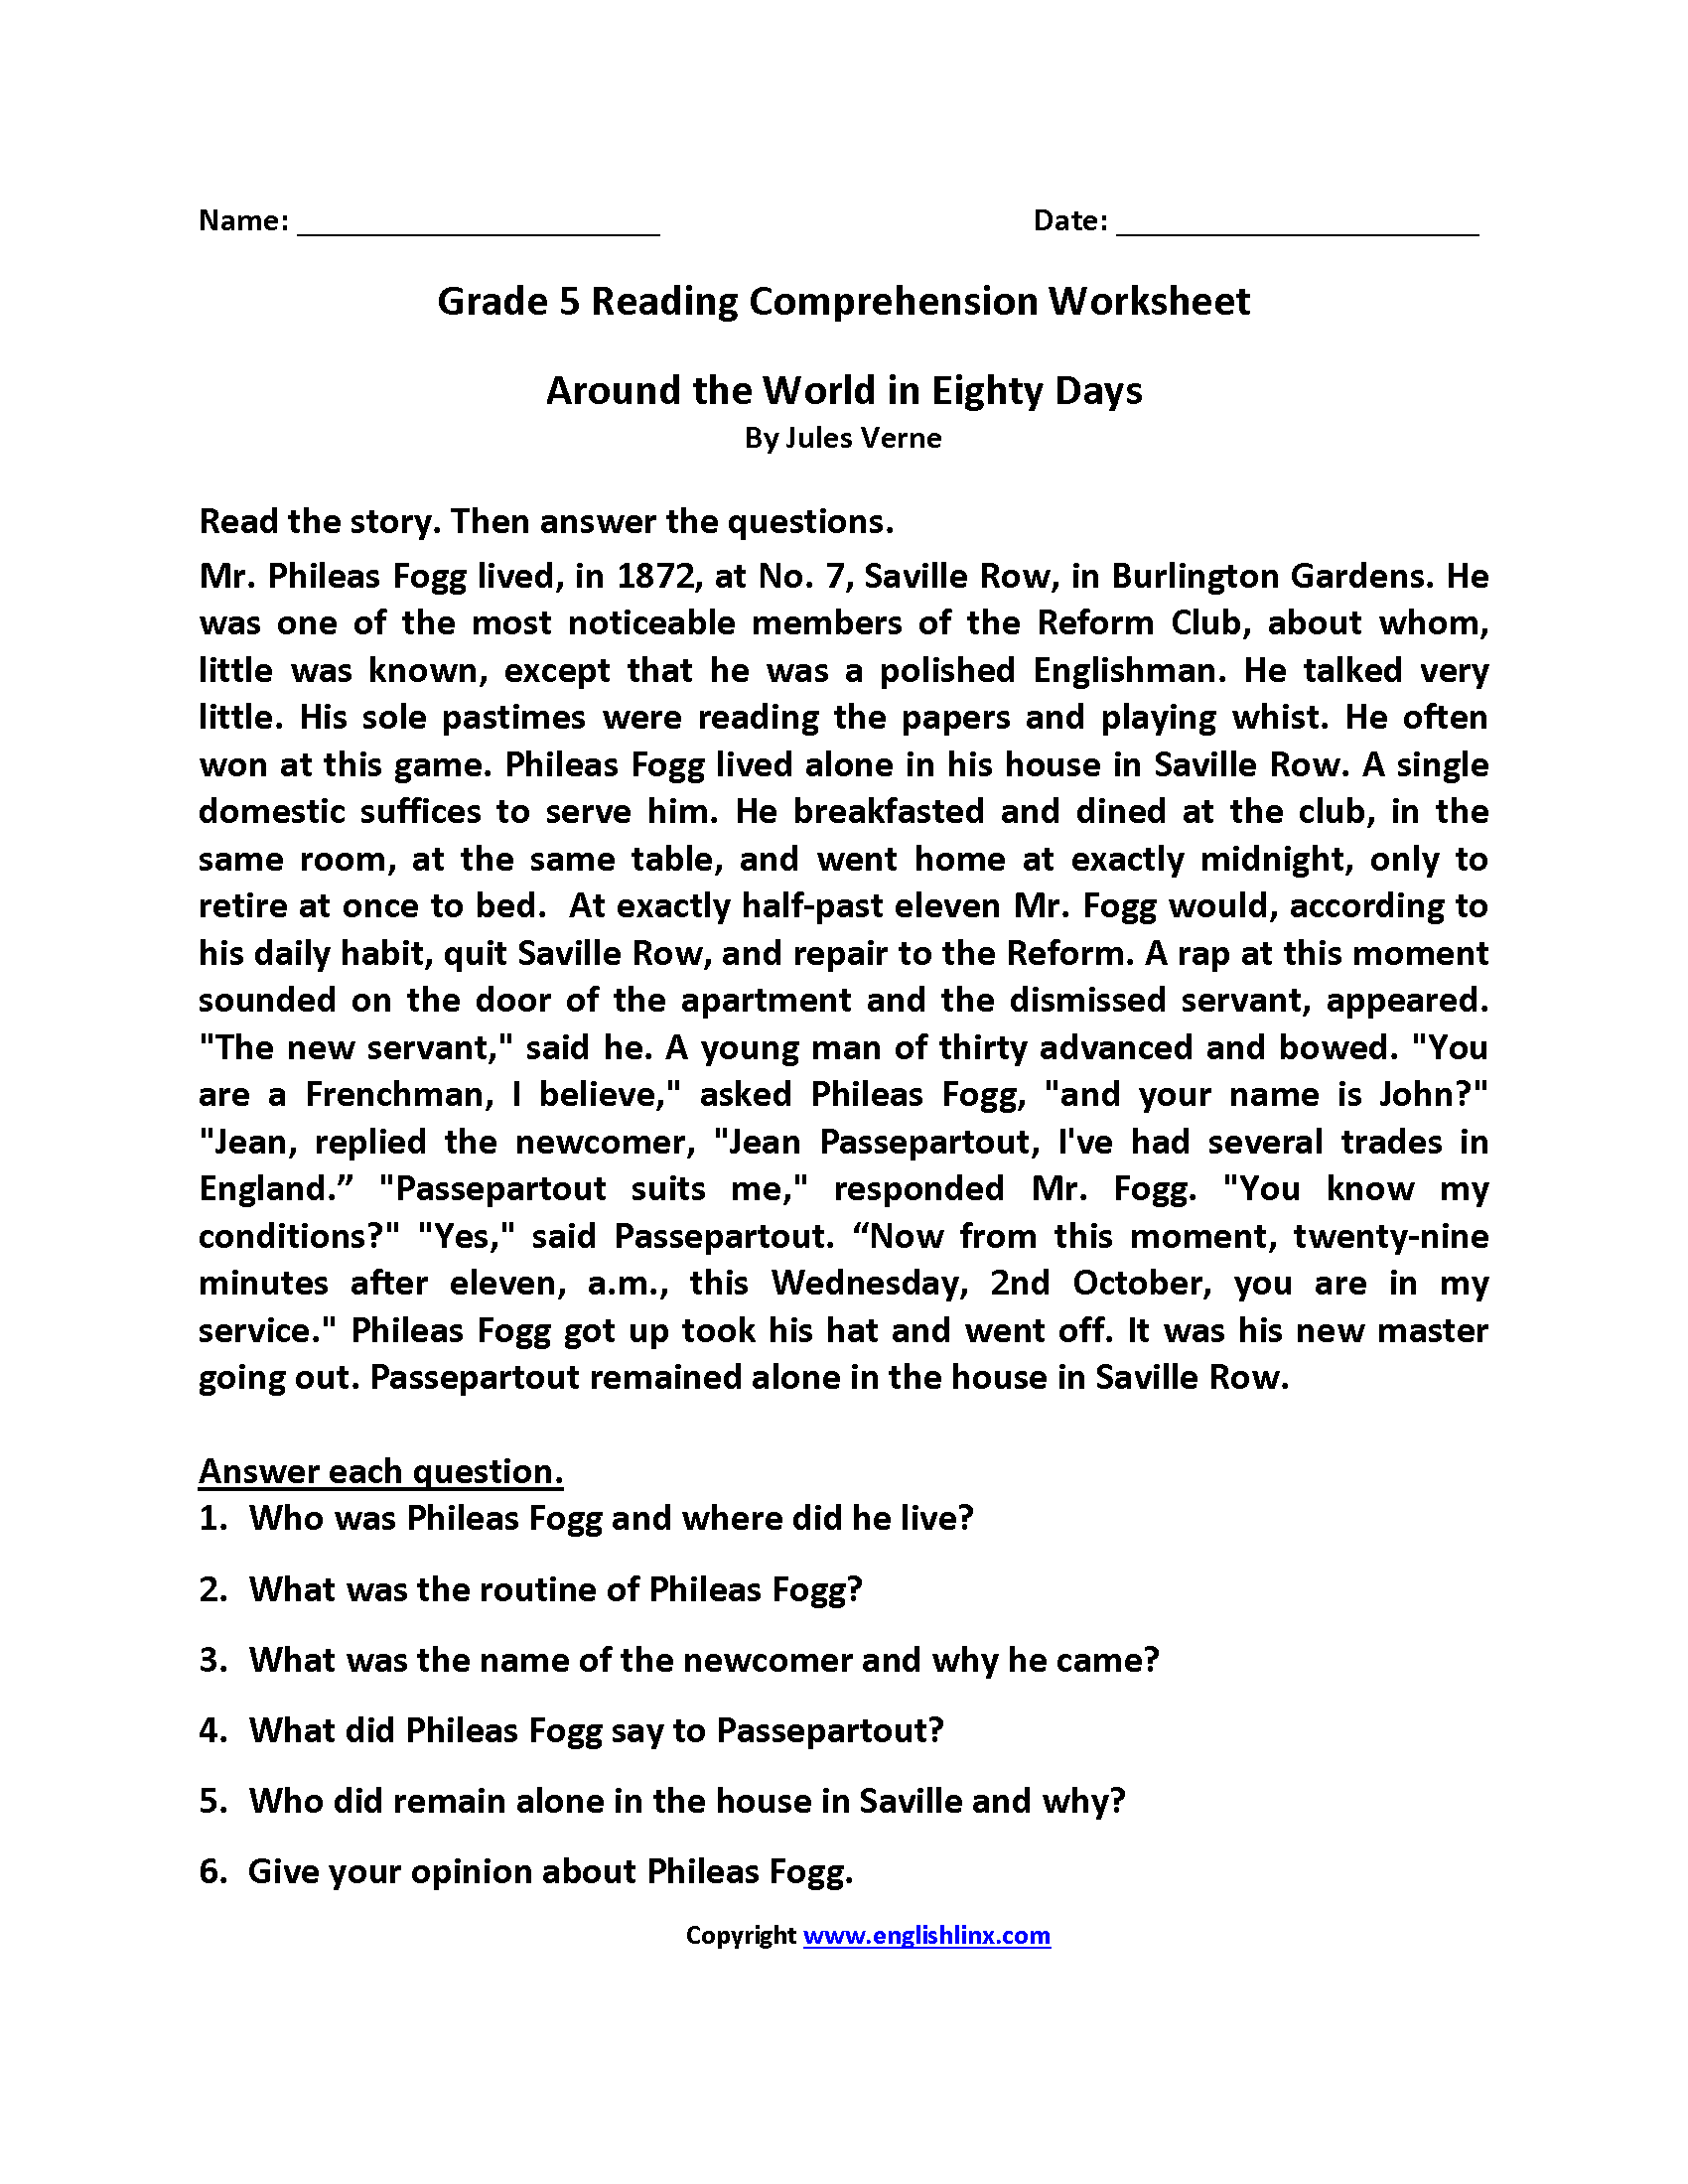 Worksheets Ela Worksheets For 5th Grade reading worksheets fifth grade worksheets